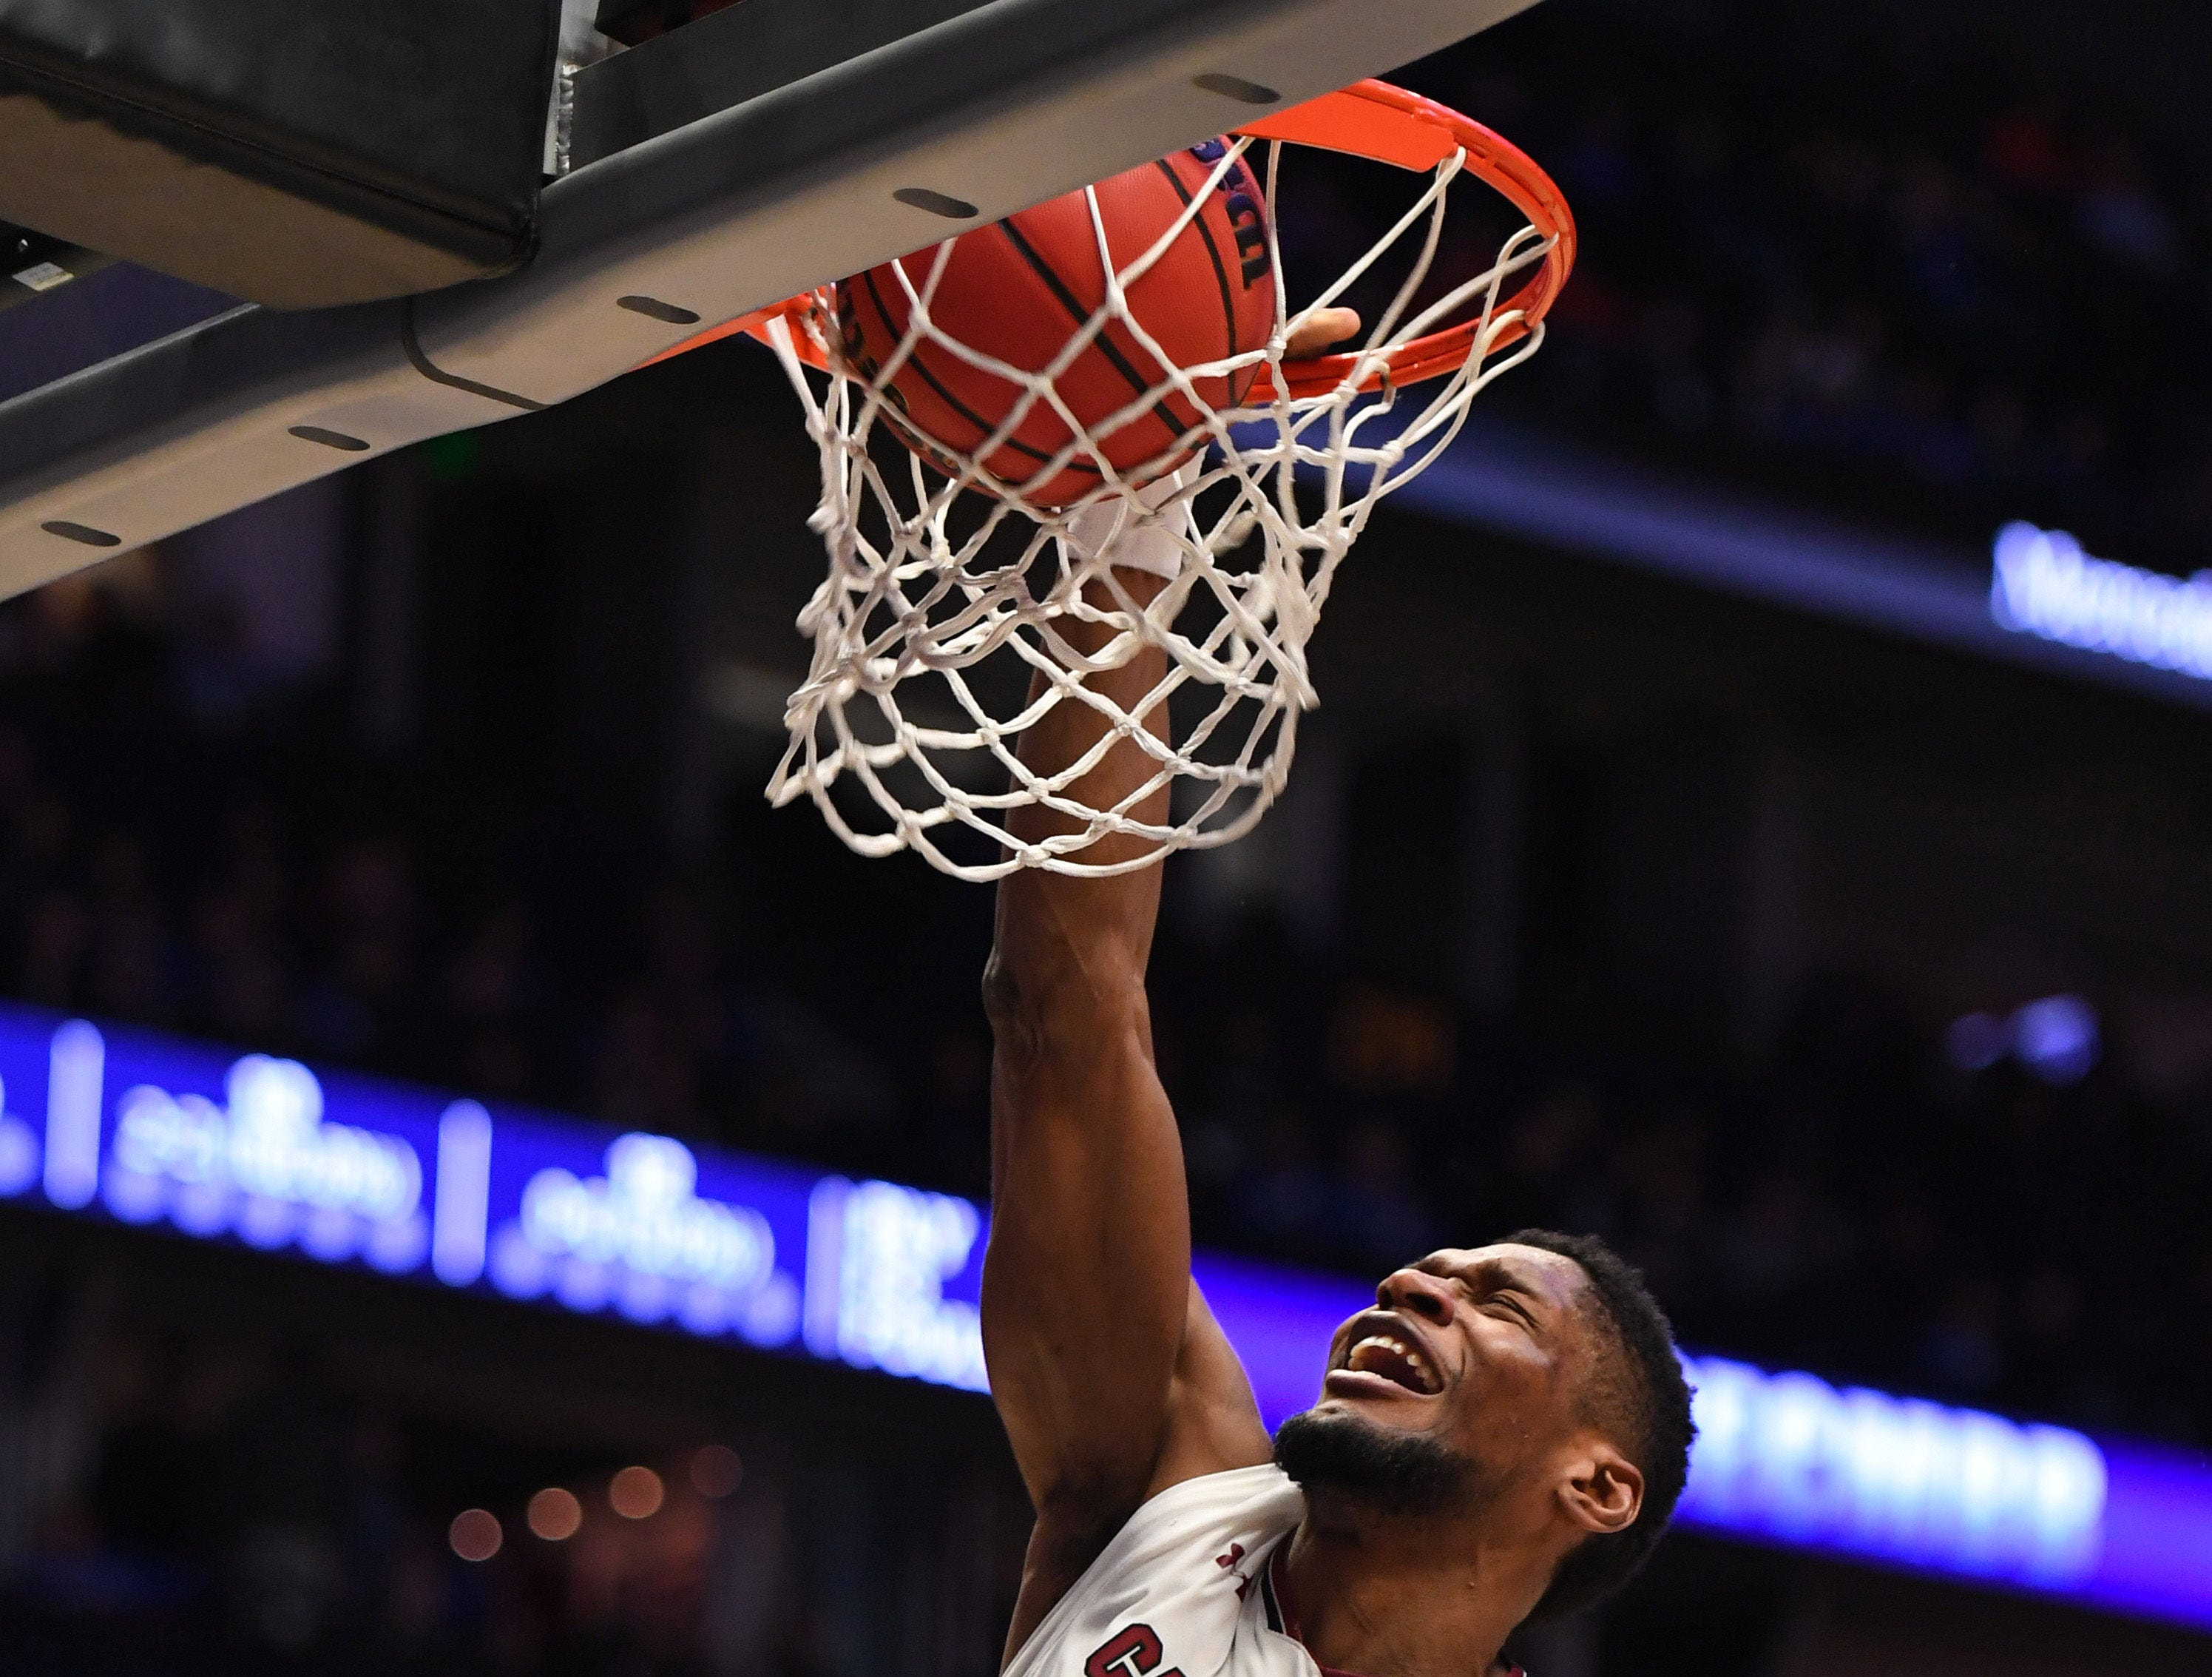 Mar 15, 2019; Nashville, TN, USA; South Carolina Gamecocks forward Chris Silva (30) dunks the ball against the Auburn Tigers during the first half of the SEC conference tournament at Bridgestone Arena. Mandatory Credit: Christopher Hanewinckel-USA TODAY Sports